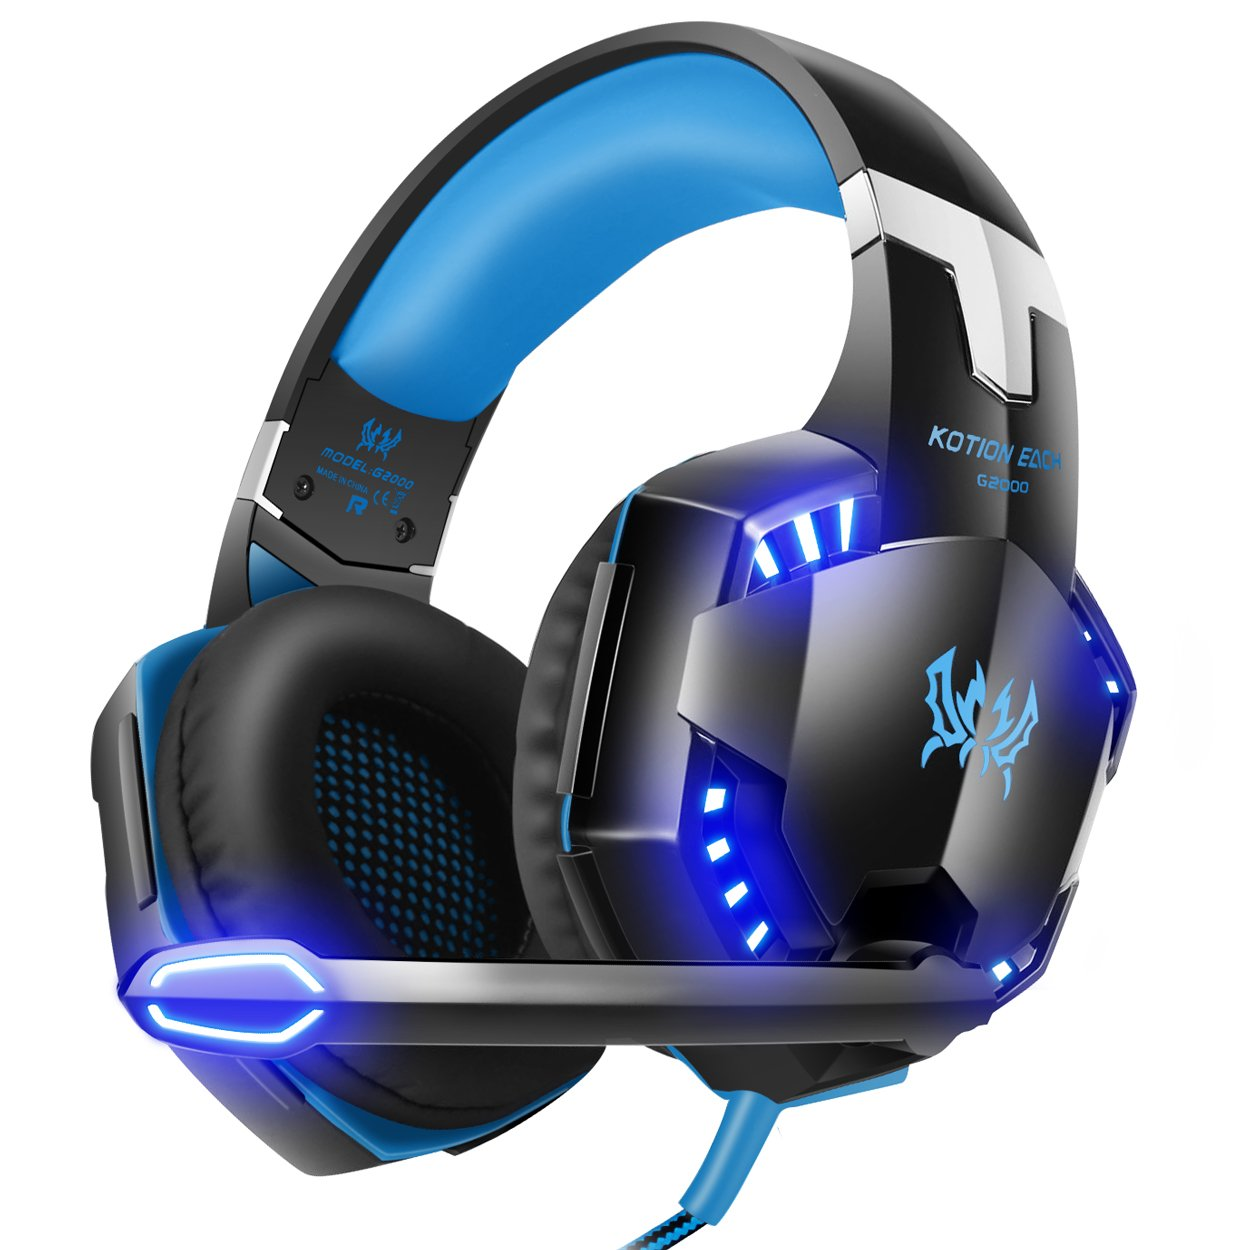 613P%2Bjekw8L. SL1250  - The Best Cheap Gaming Headset under $50 in 2020